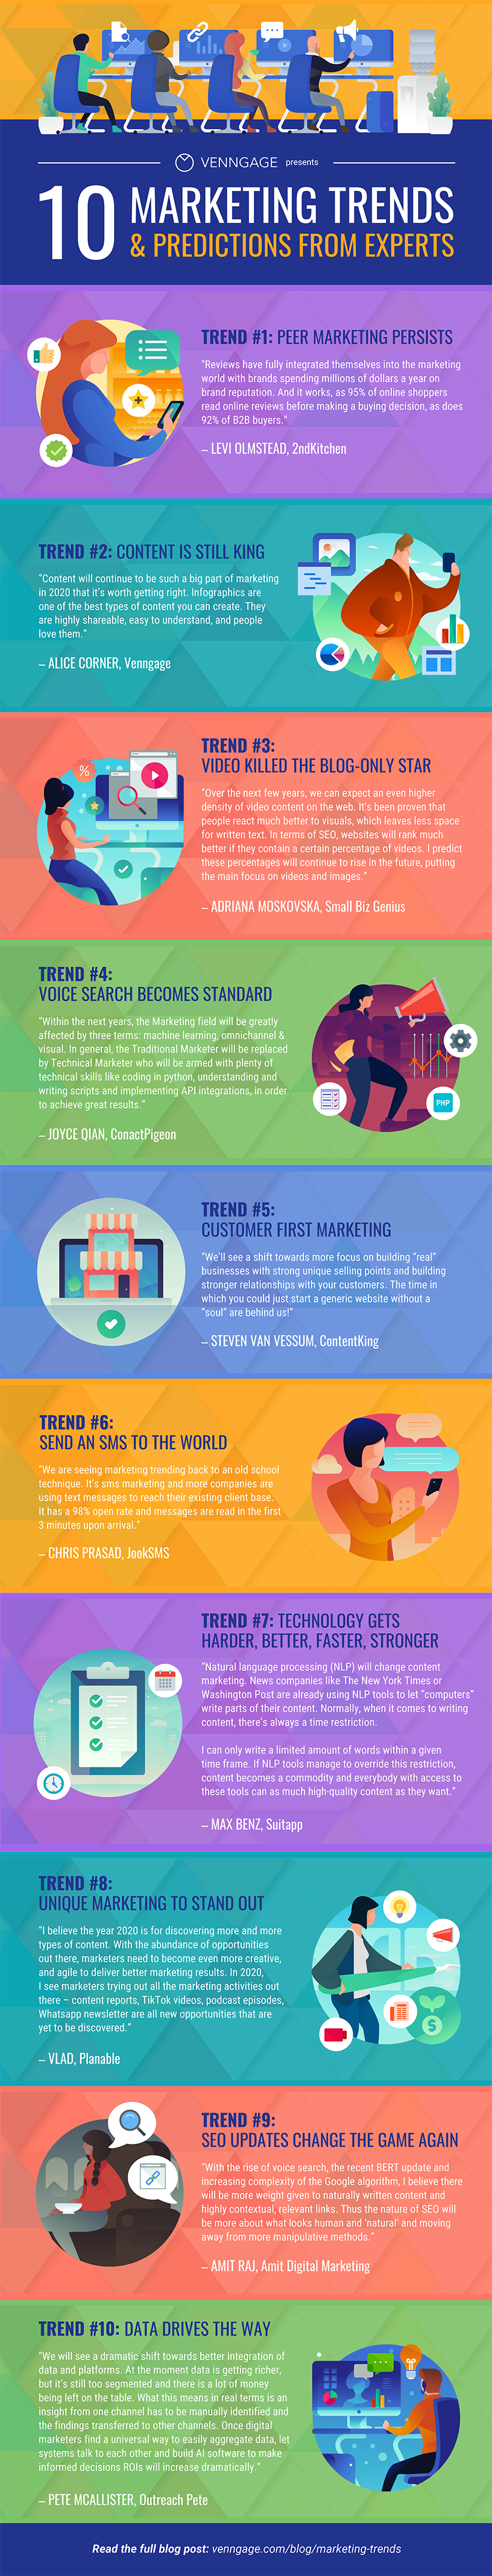 Marketing Trends Expert Predictions Infographic